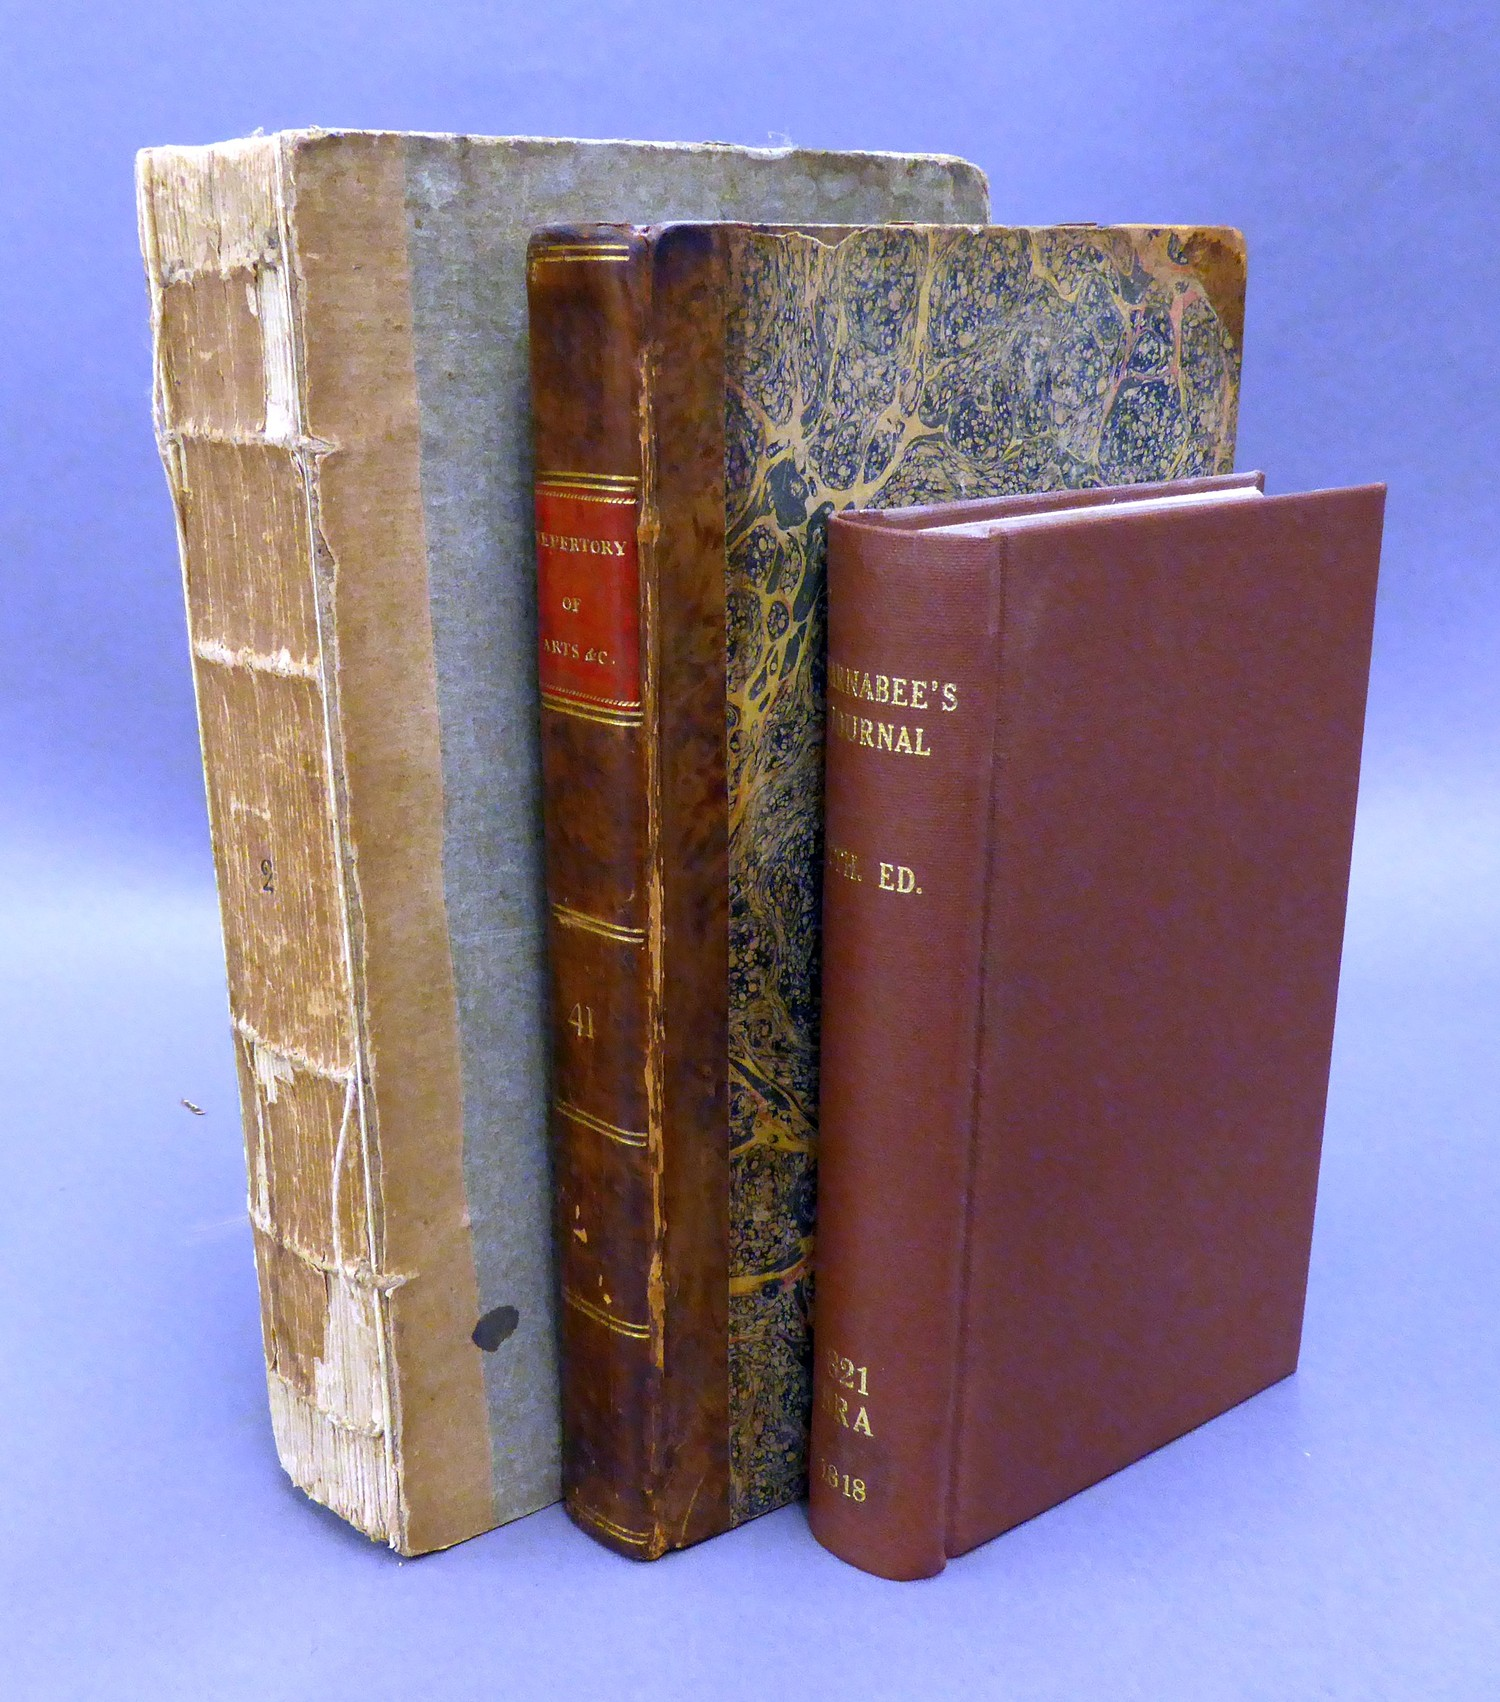 Barnabae Itinerarium, or Barnabee?s Journal, seventh edition, printed Harding, Taylor, 1818, rebound